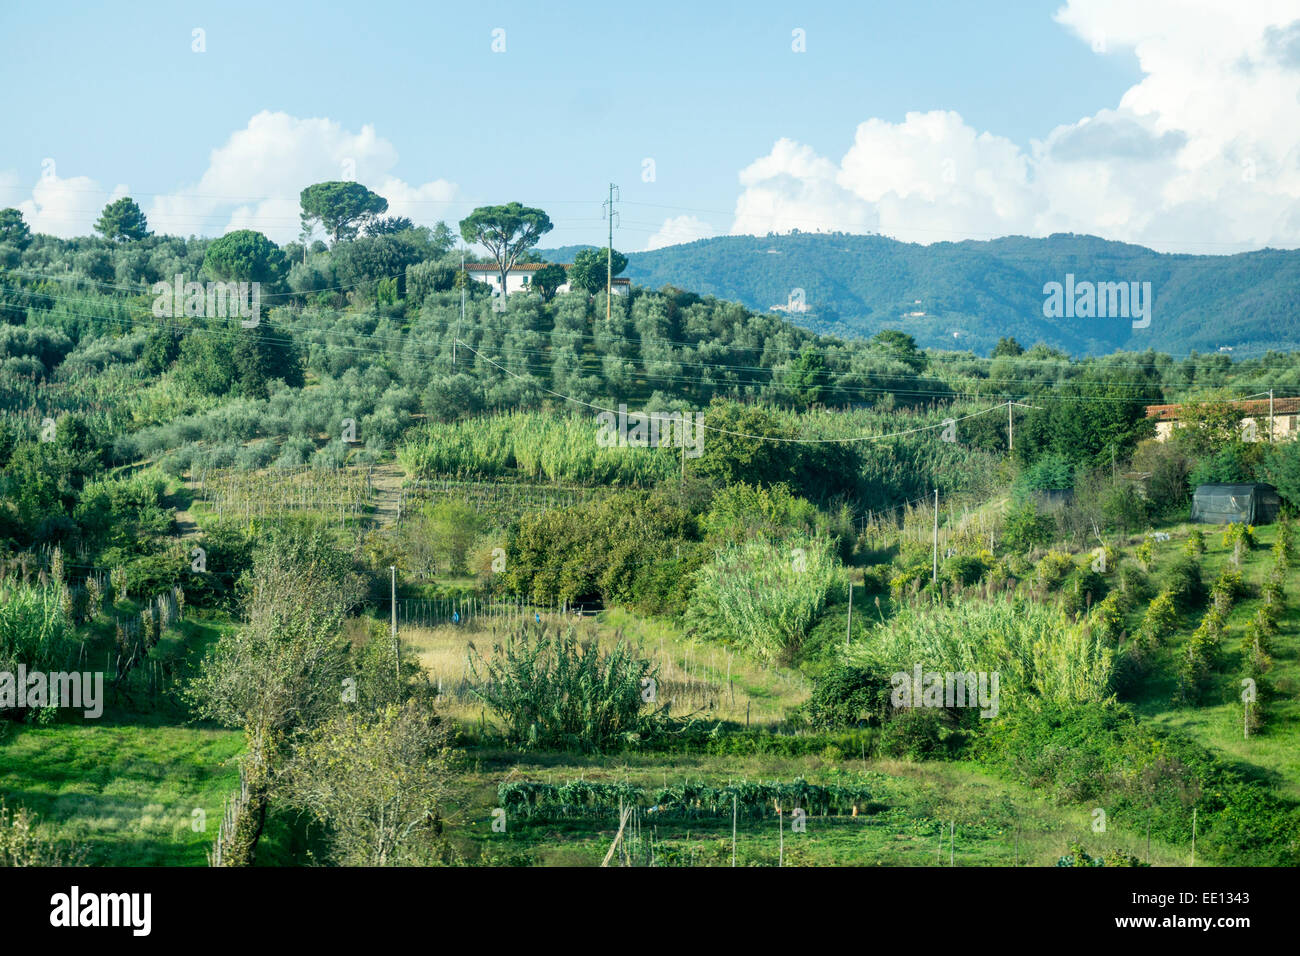 gently rolling rural Tuscan hill hills hillside with houses set amid olive groves vineyards & other lush green - Stock Image